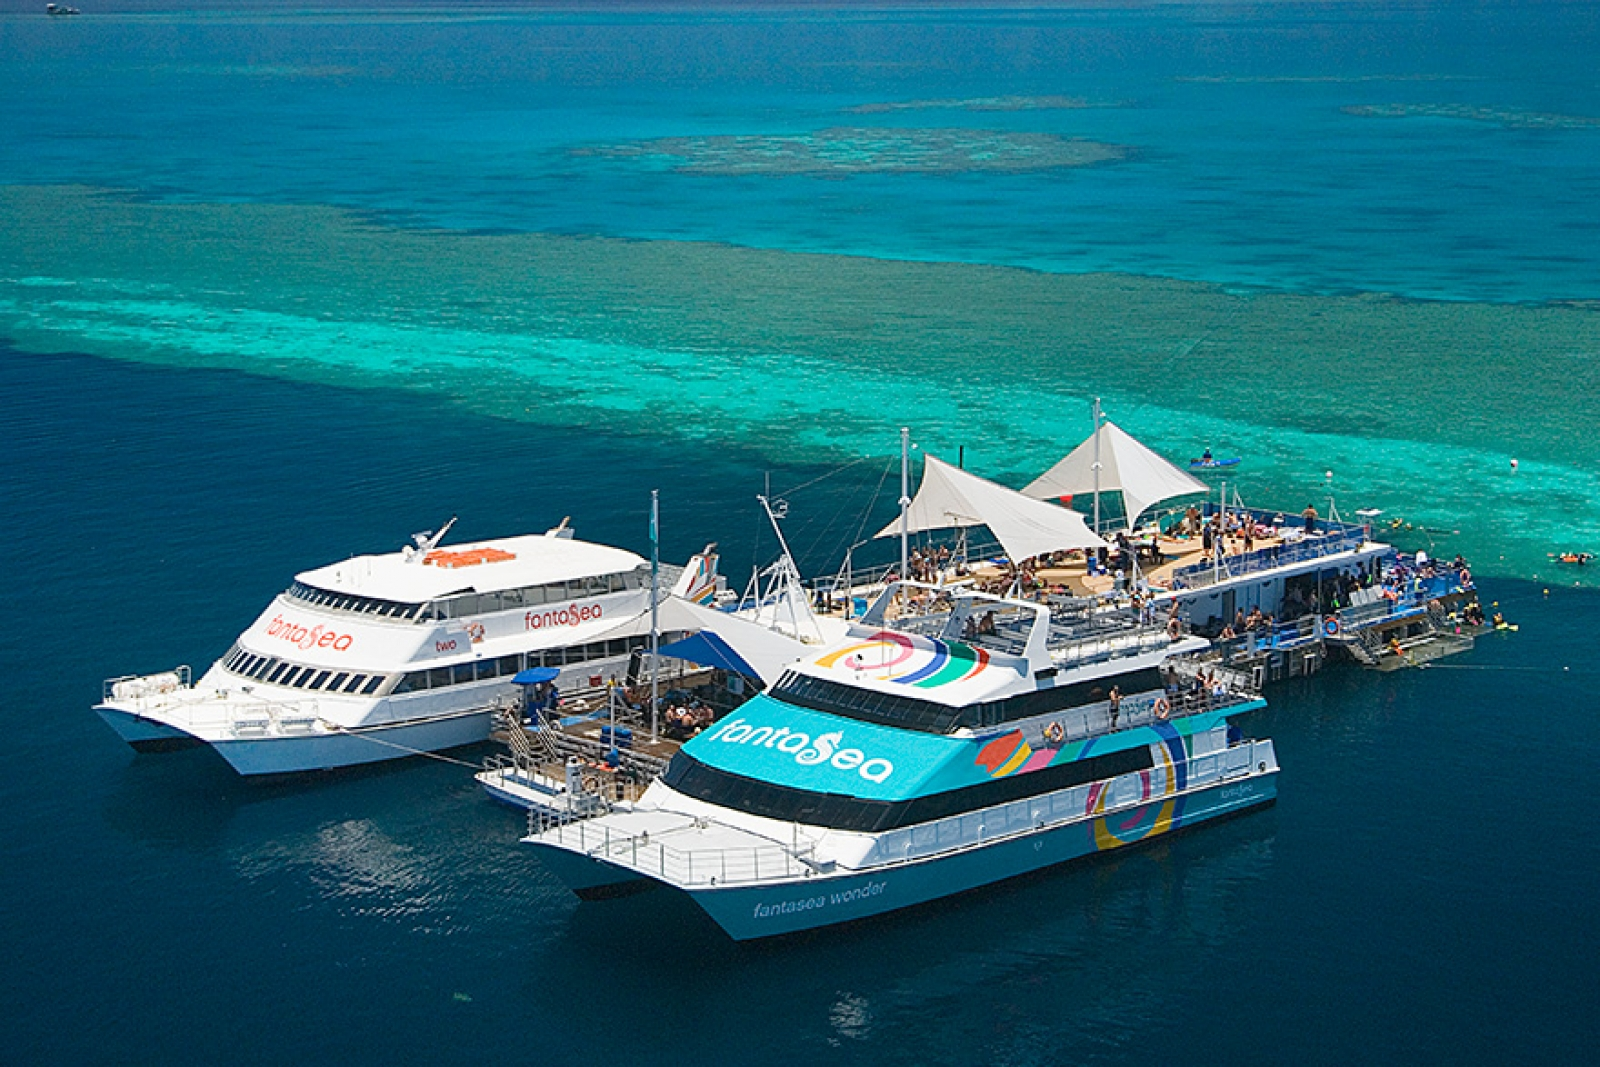 Fantasea Cruising Pontoon, Whitsundays